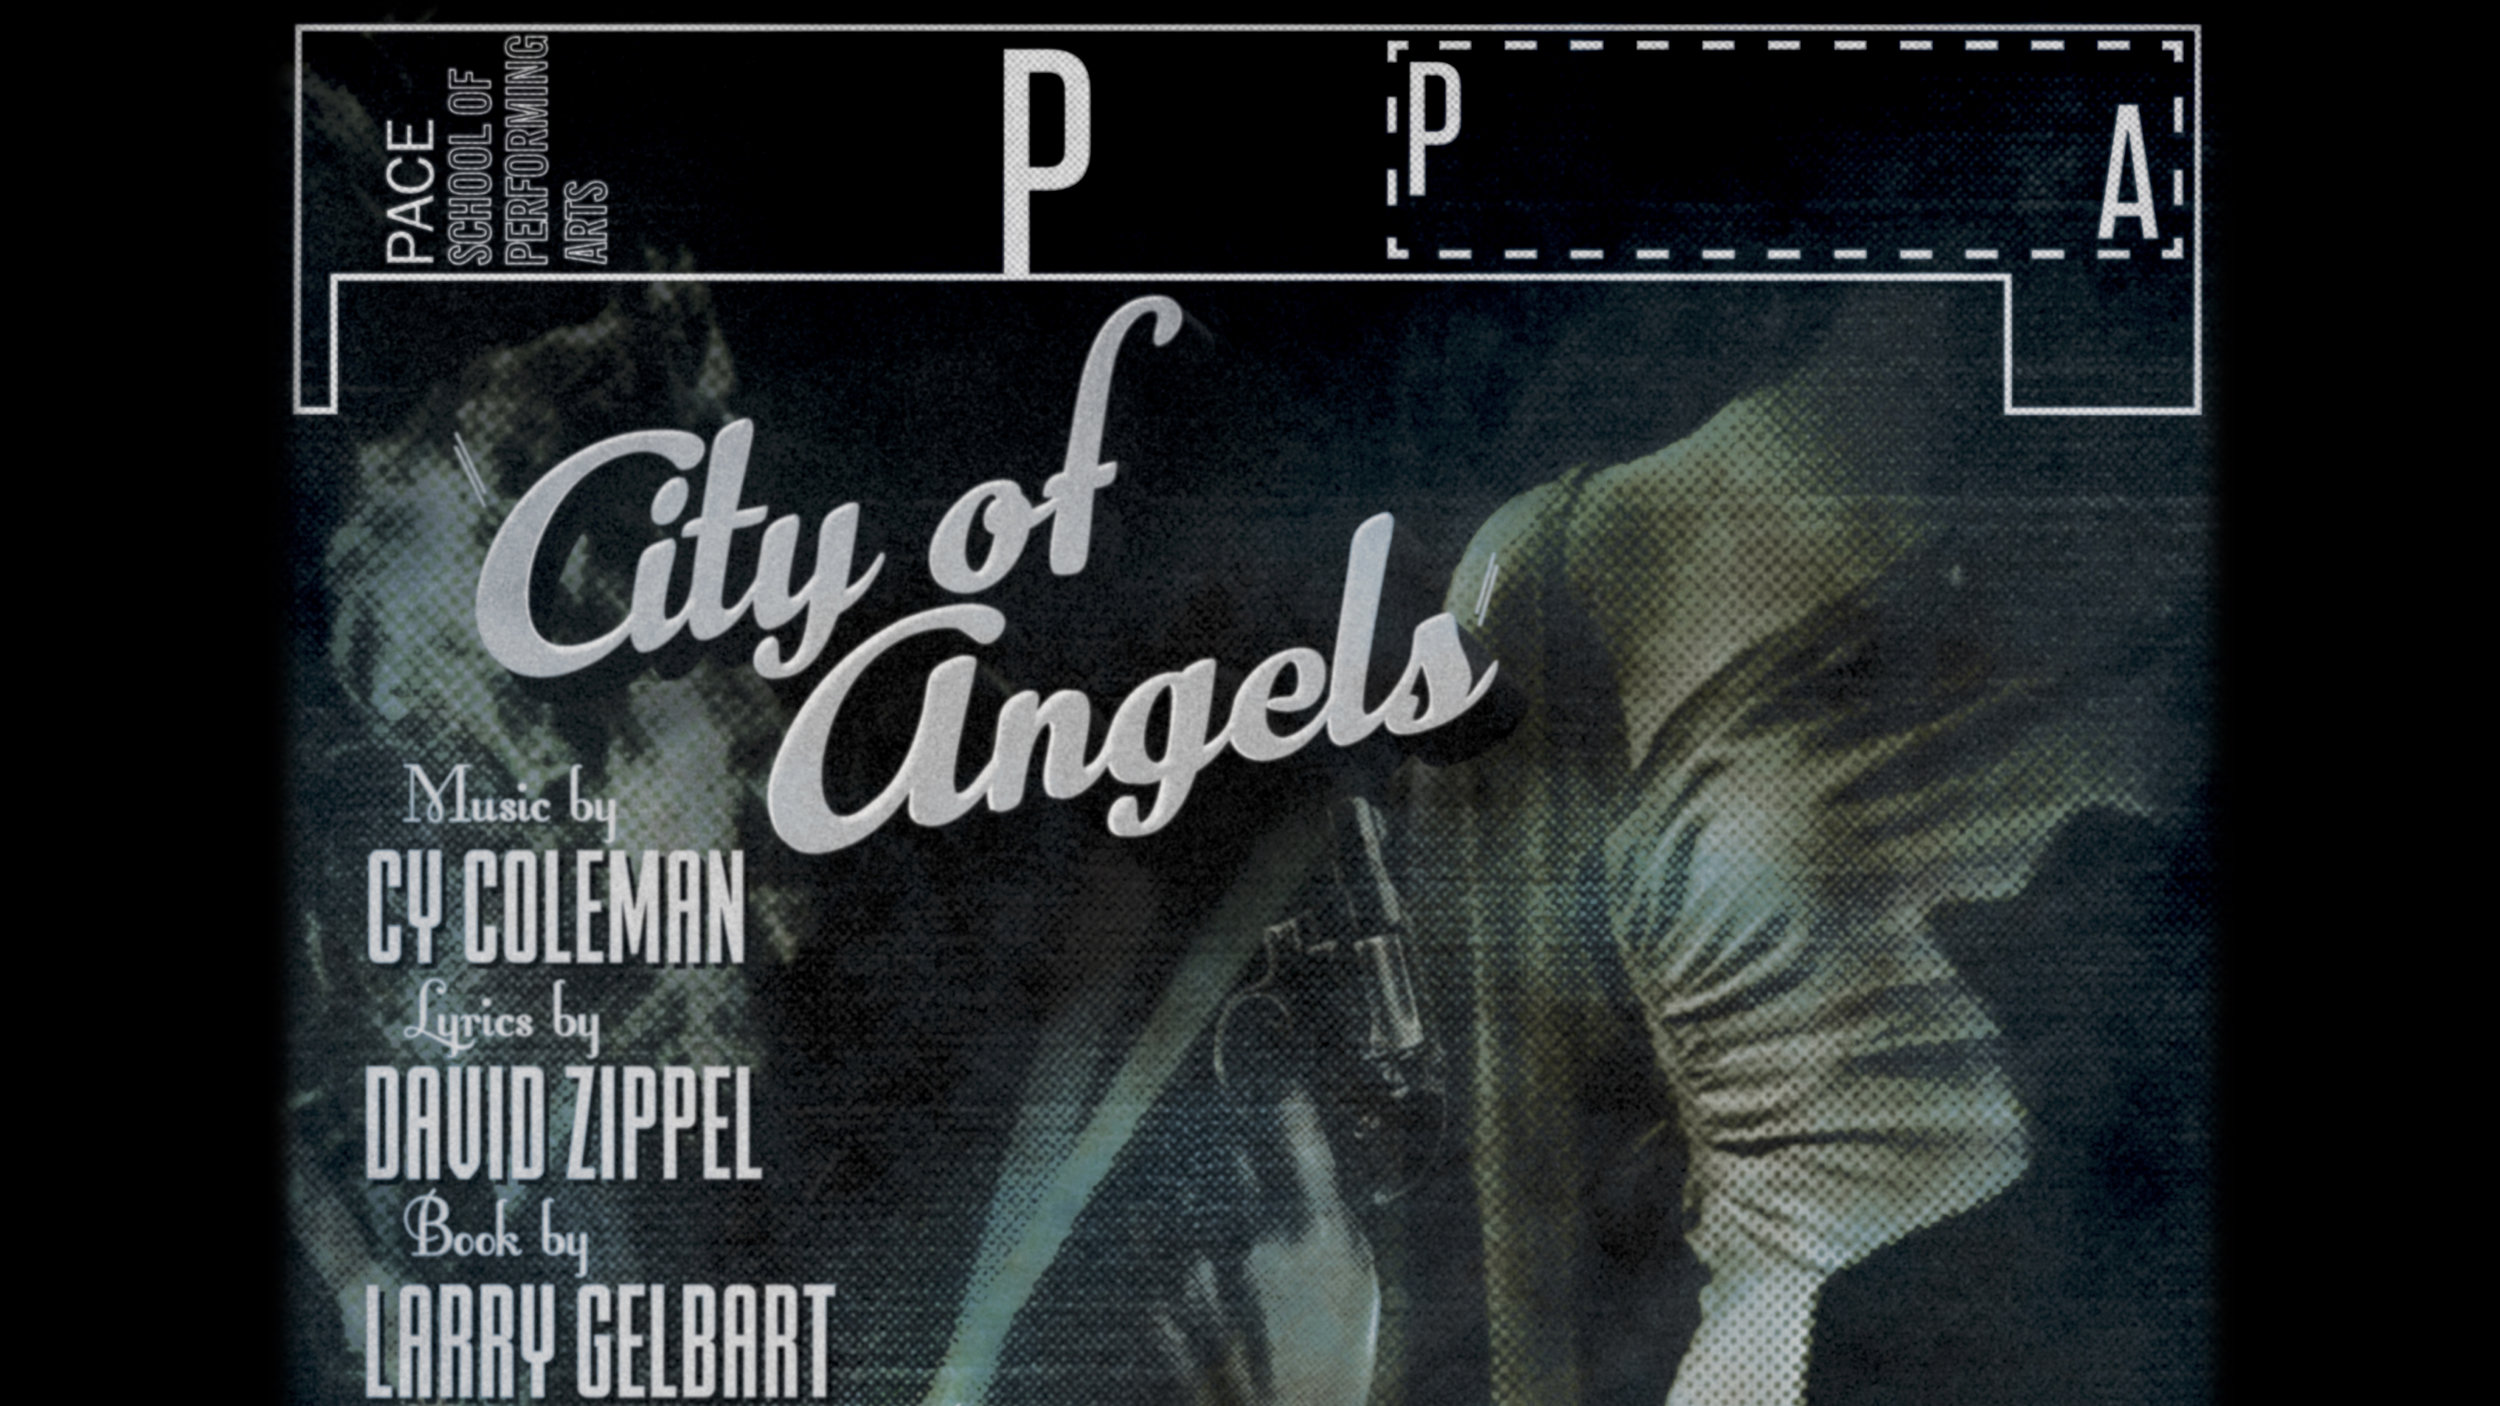 City of Angels - Music by Cy Coleman, Lyrics by David Zippel, Book by Larry GelbartAssistant Musical DirectorSchaeberle Studio Theatre, Pace School of Performing Arts (2017)